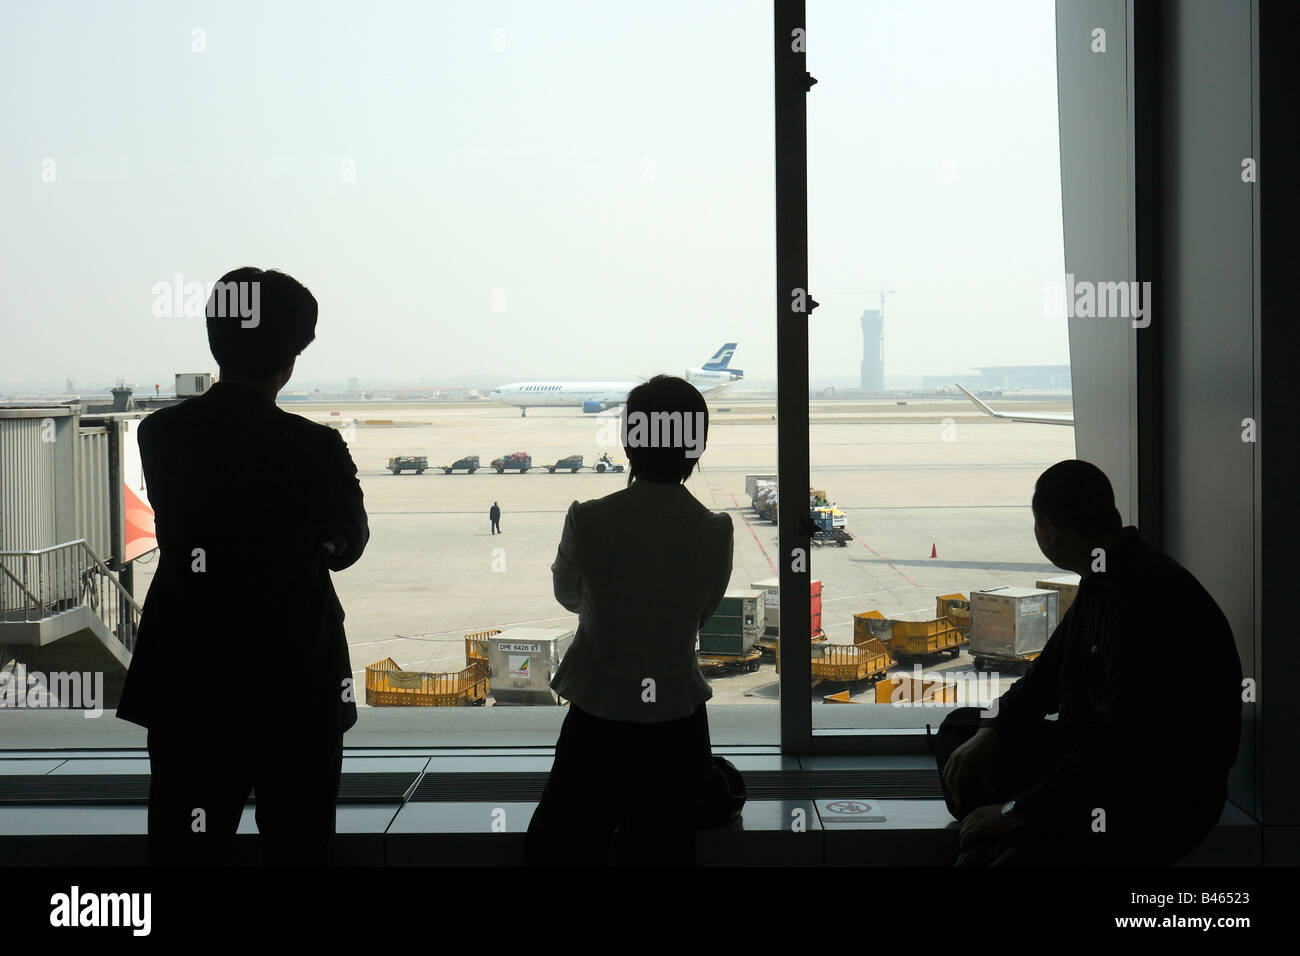 Three people looking at the airside of the airport in Beijing, China - Stock Image